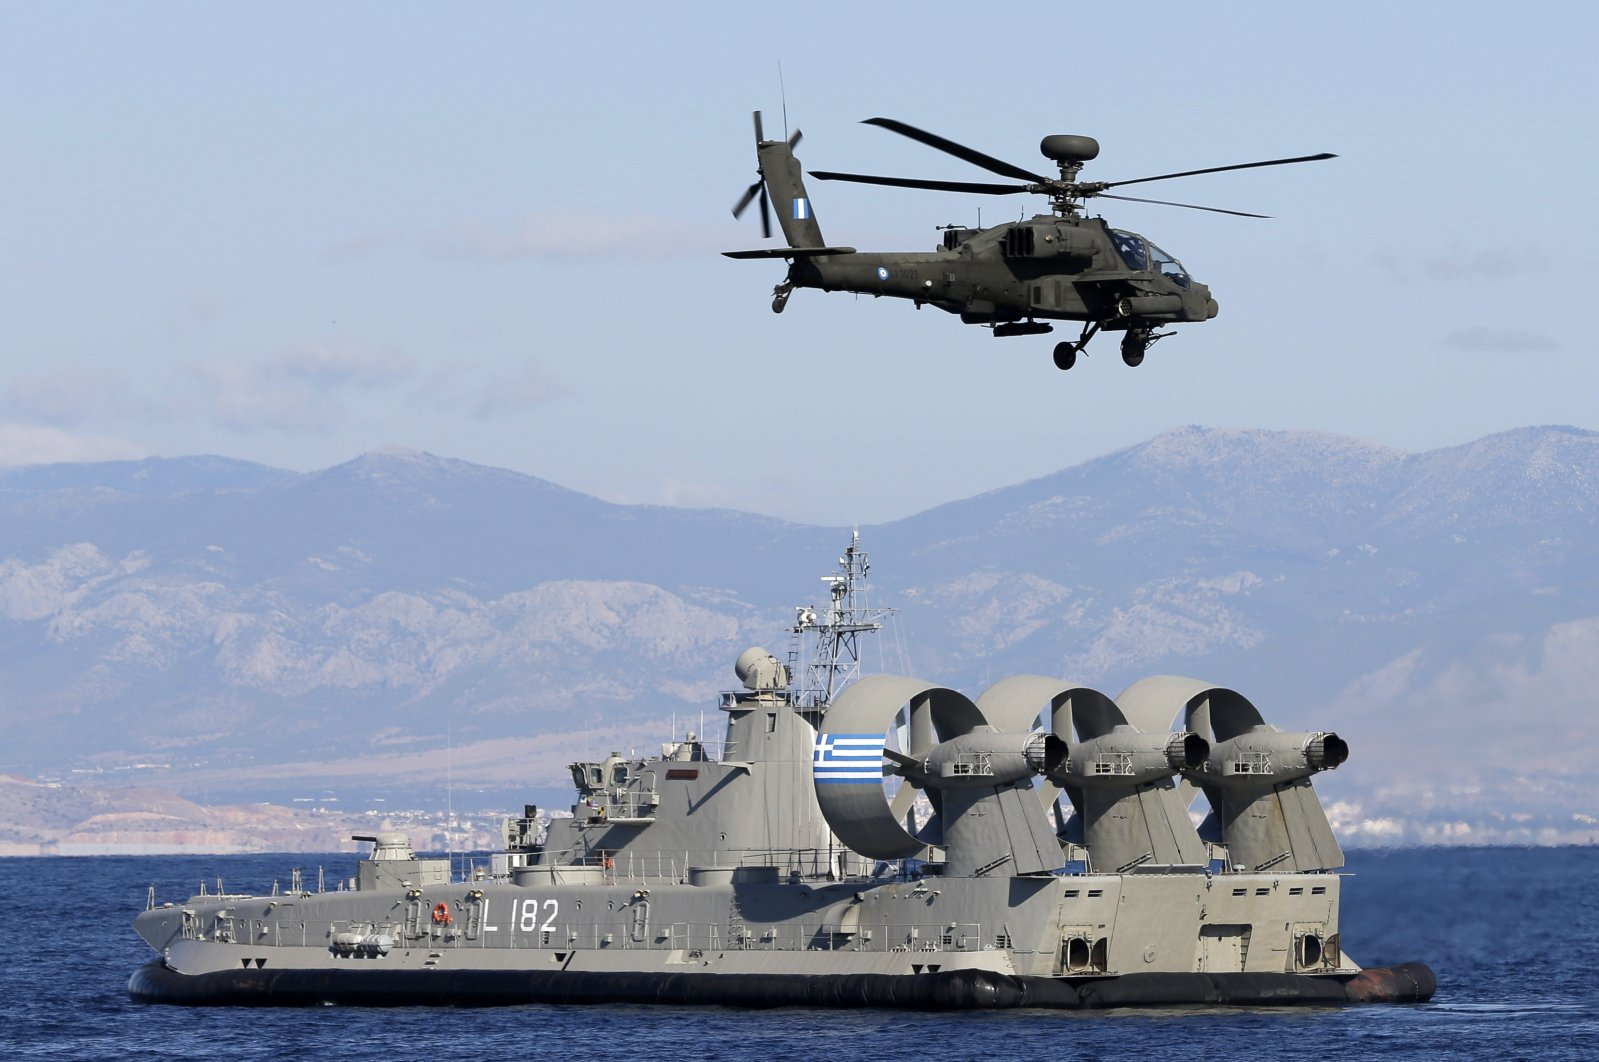 A military helicopter and naval hovercraft during a Greek joint military exercise Pyrpolitis on the Saronic Gulf, south of Athens on Oct. 30, 2014. (AP File Photo)